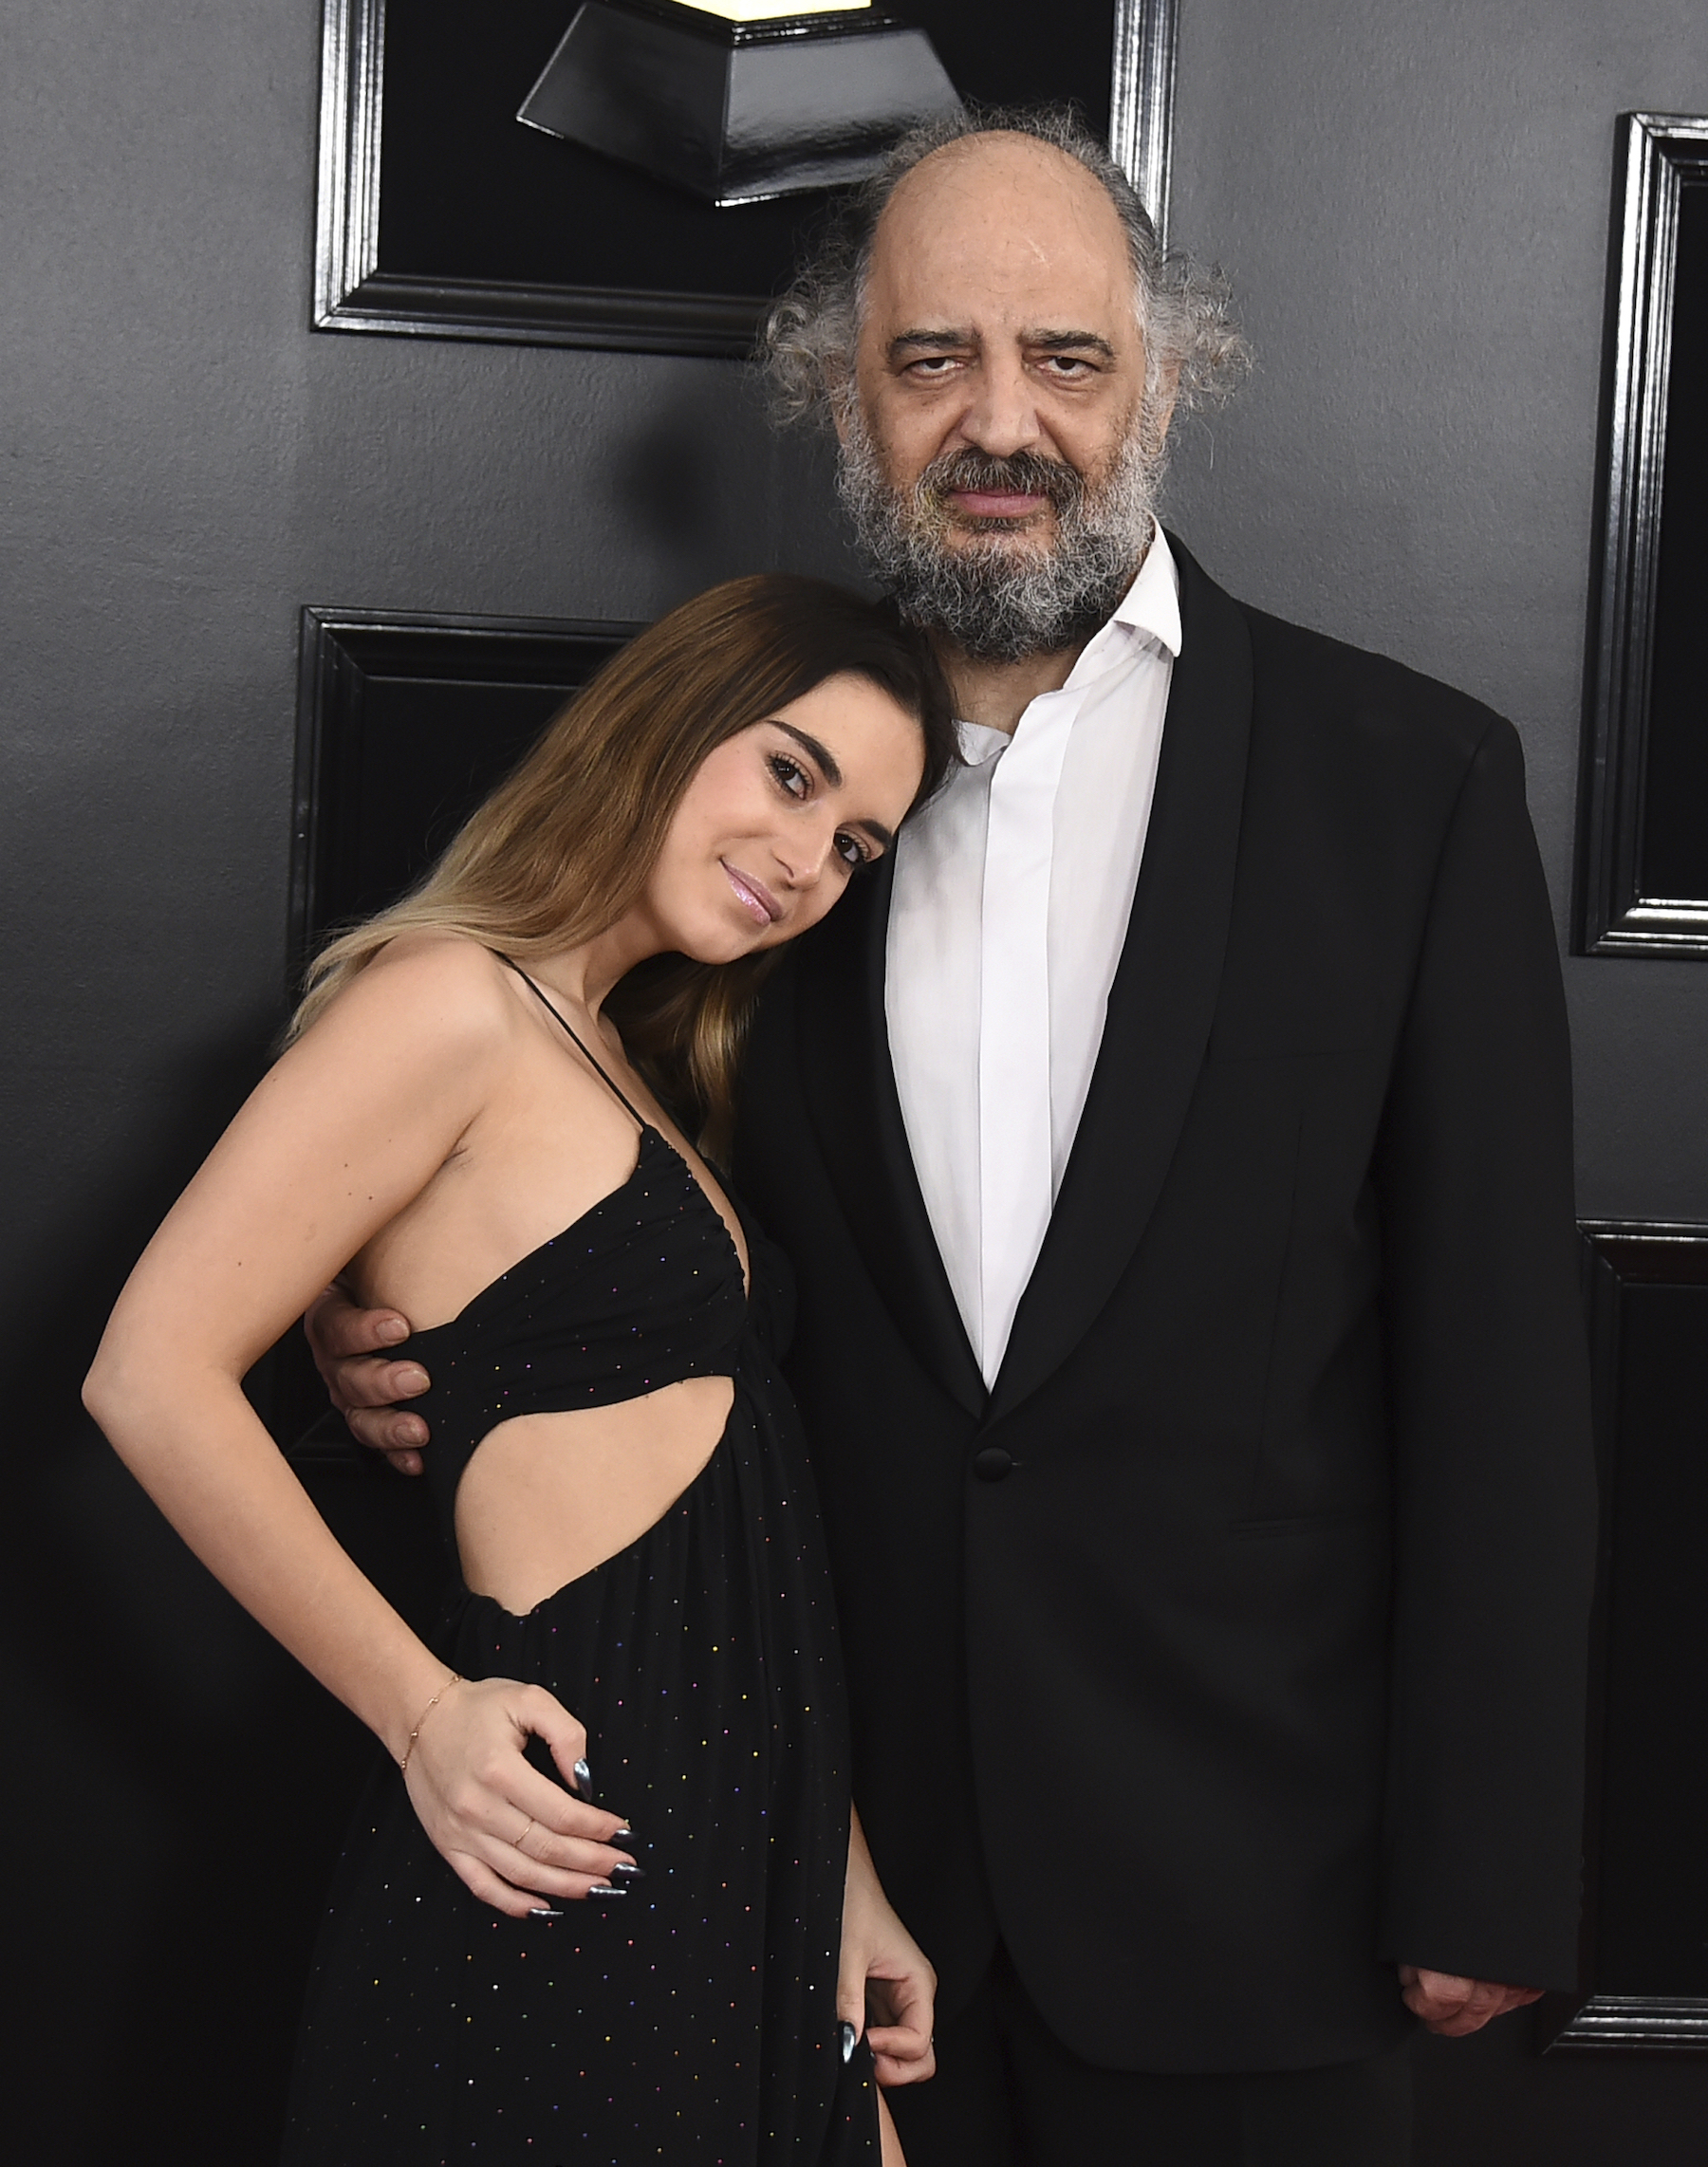 <div class='meta'><div class='origin-logo' data-origin='AP'></div><span class='caption-text' data-credit='Jordan Strauss/Invision/AP'>Anastasia Blomstrand, left, and Sergey Erdenko arrive at the 61st annual Grammy Awards at the Staples Center on Sunday, Feb. 10, 2019, in Los Angeles.</span></div>